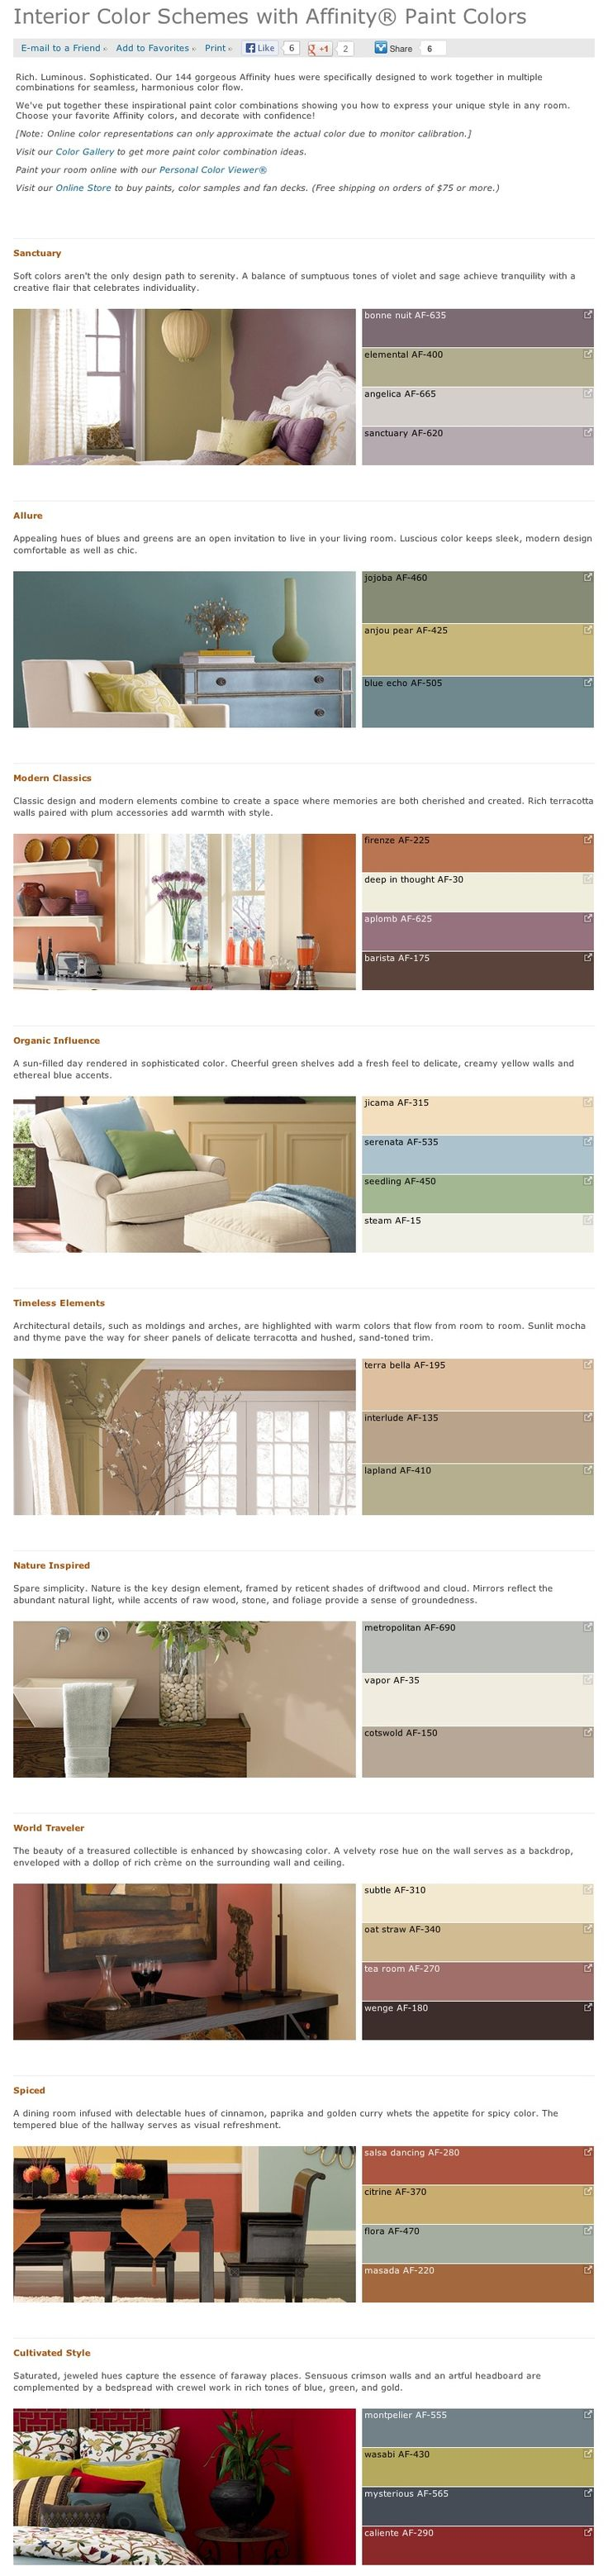 Favorite, popular, & best selling shades of interior paint color palettes by Affinity collection from Benjamin Moore.